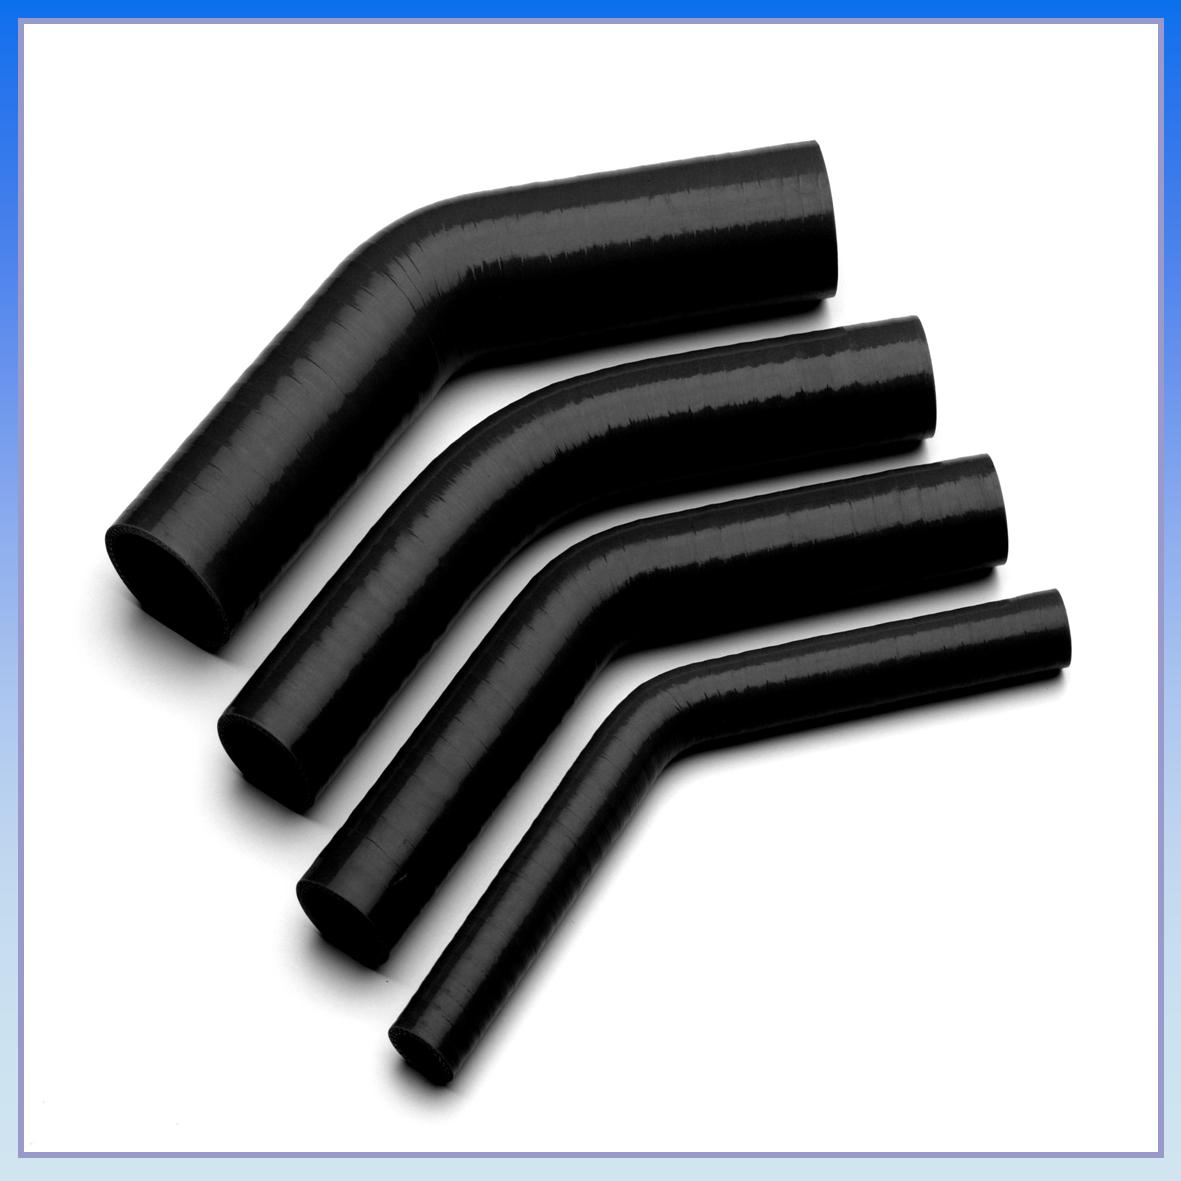 41mm 1 5 8 I D Black 45 Degree Silicone Elbow Hose Pipe